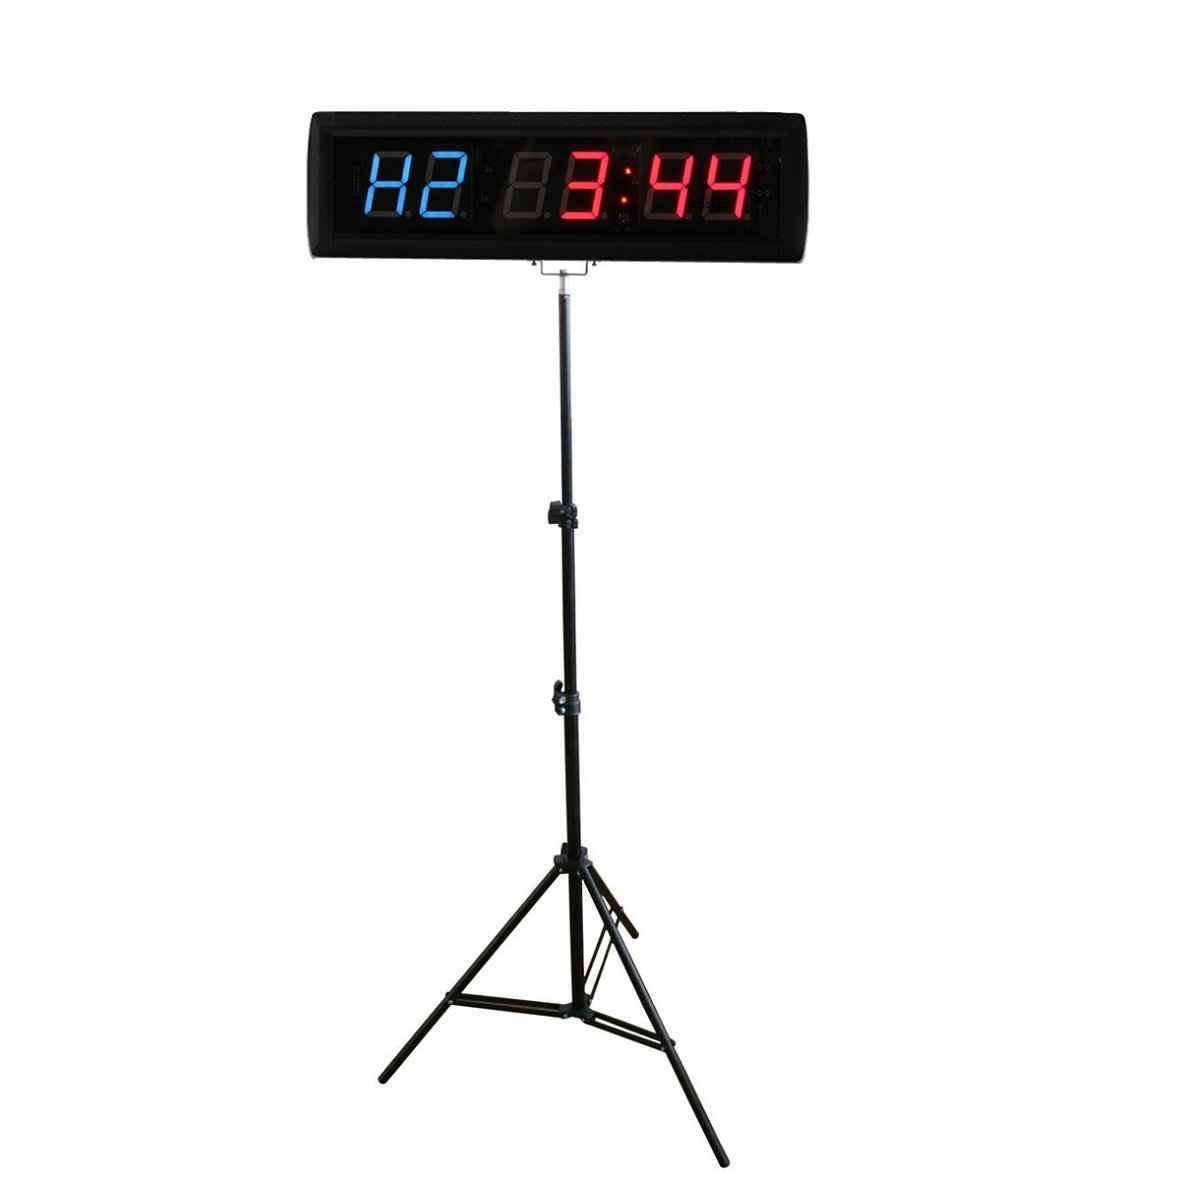 BT 1.8'' LED Interval Wall Clock Count Down/Up Stopwatch For Gym Garage Fitness With Tripod